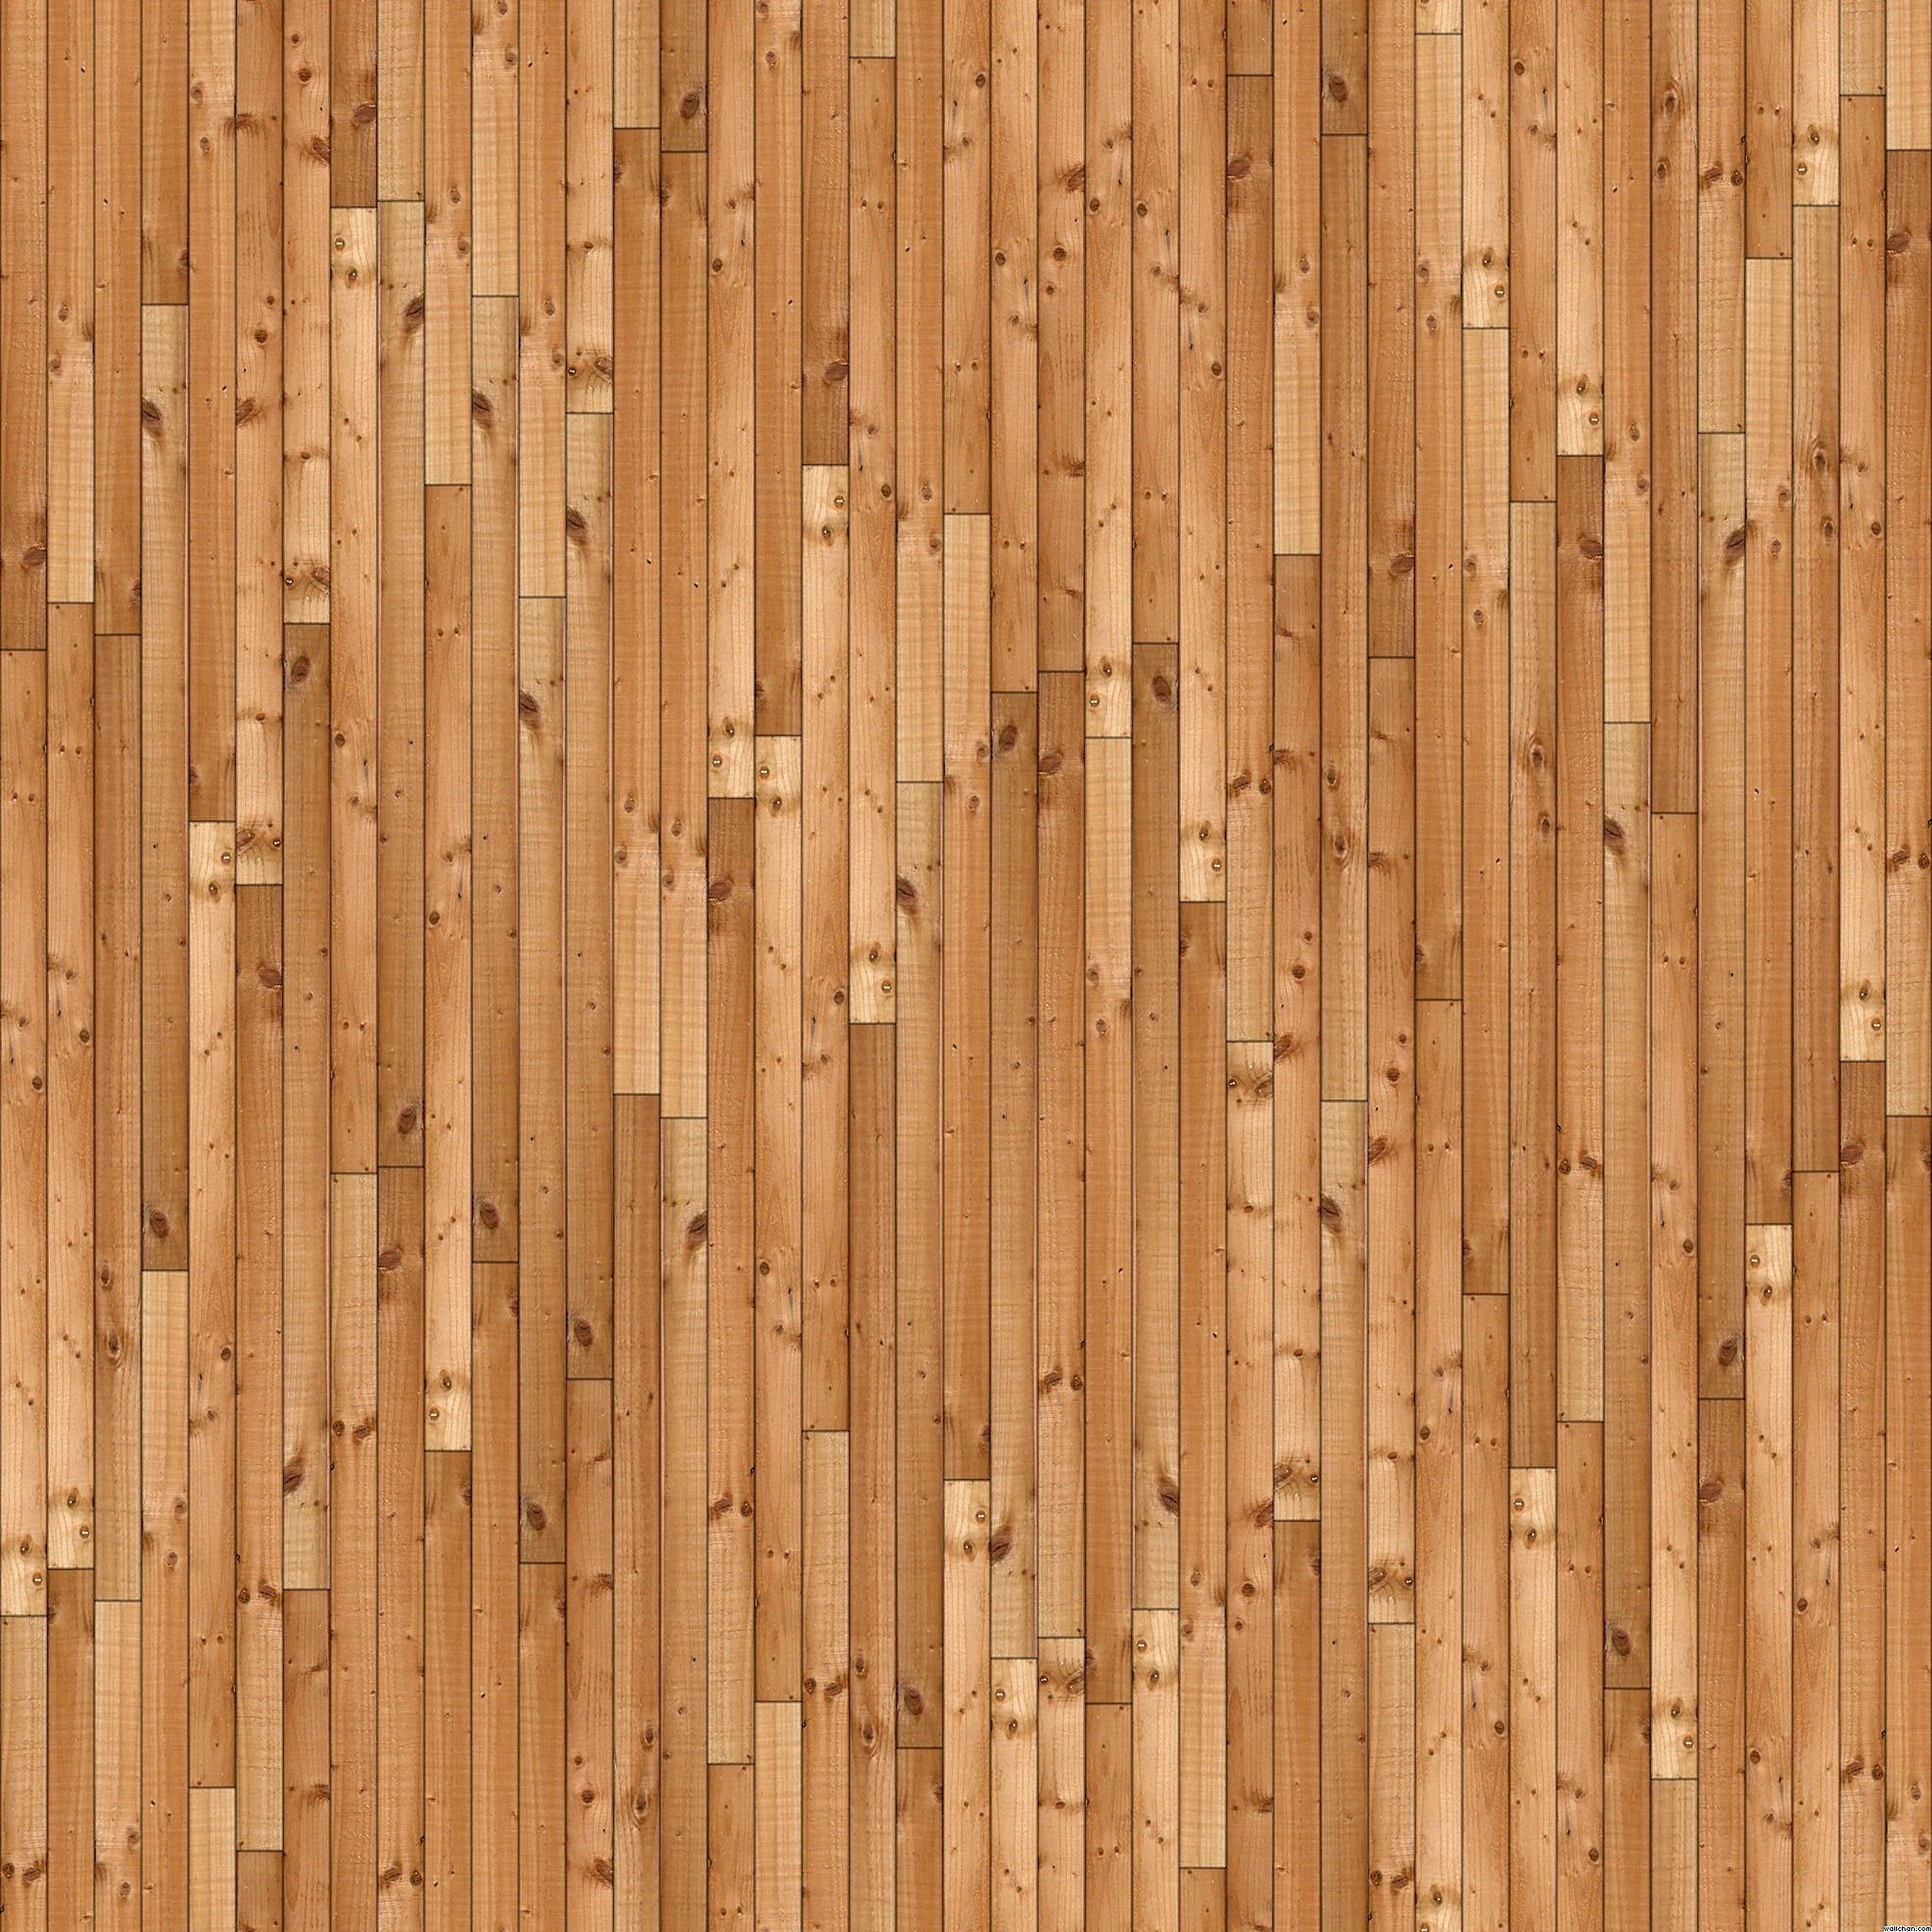 Newest iPad 3 wallpapers HD Textures Wallpapers Wood Texture 2048x2048